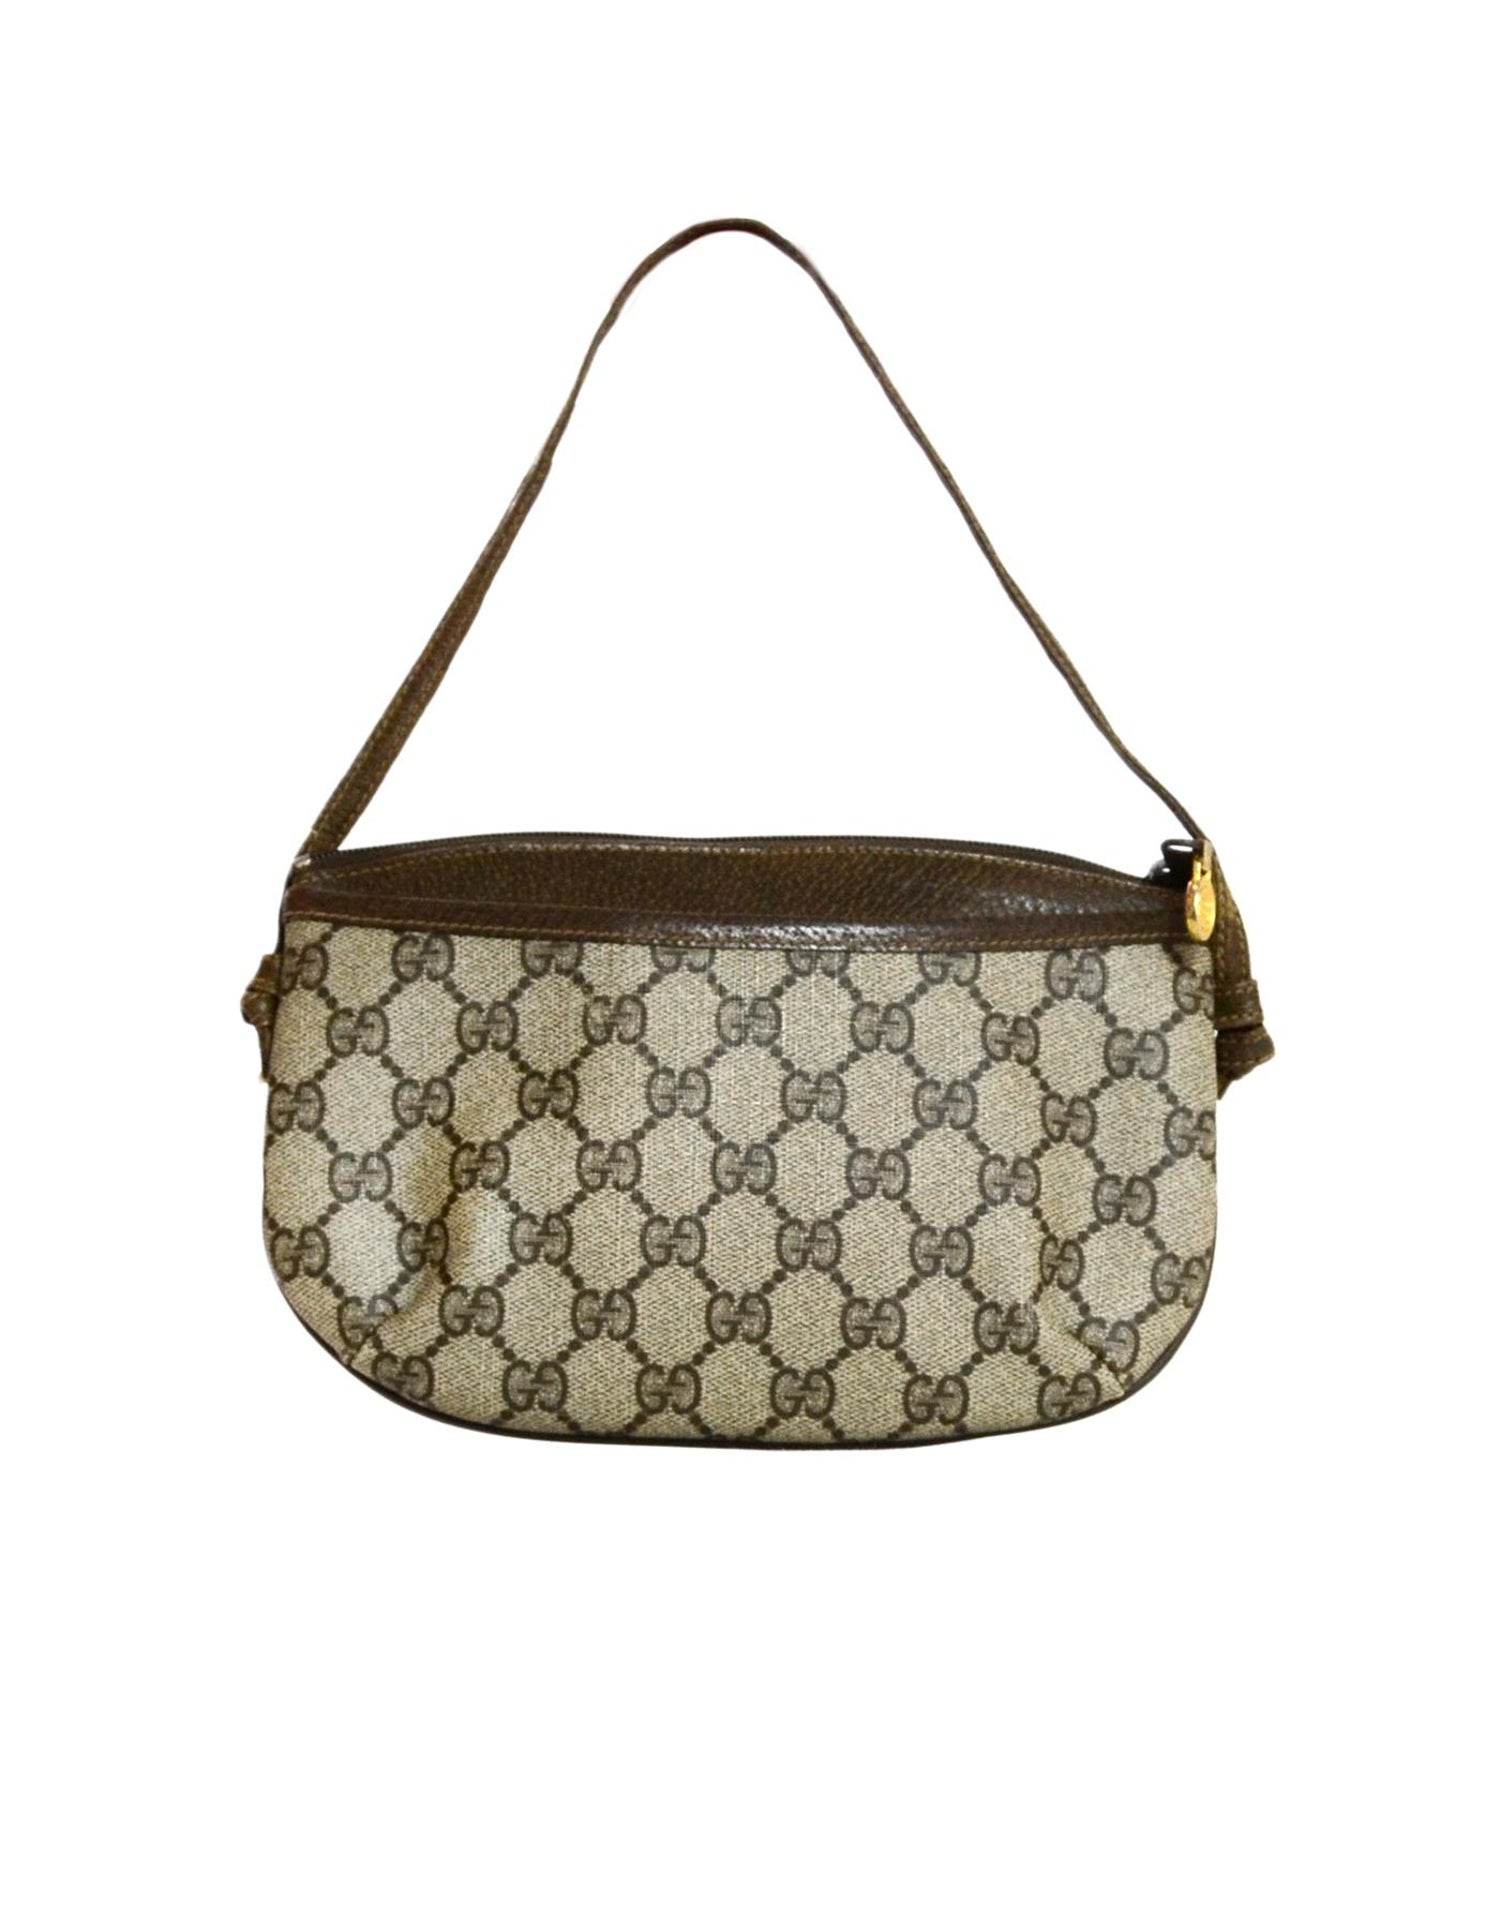 fe4246163ec9 Gucci Vintage Monogram Supreme Zip Top Pochette Bag For Sale at 1stdibs